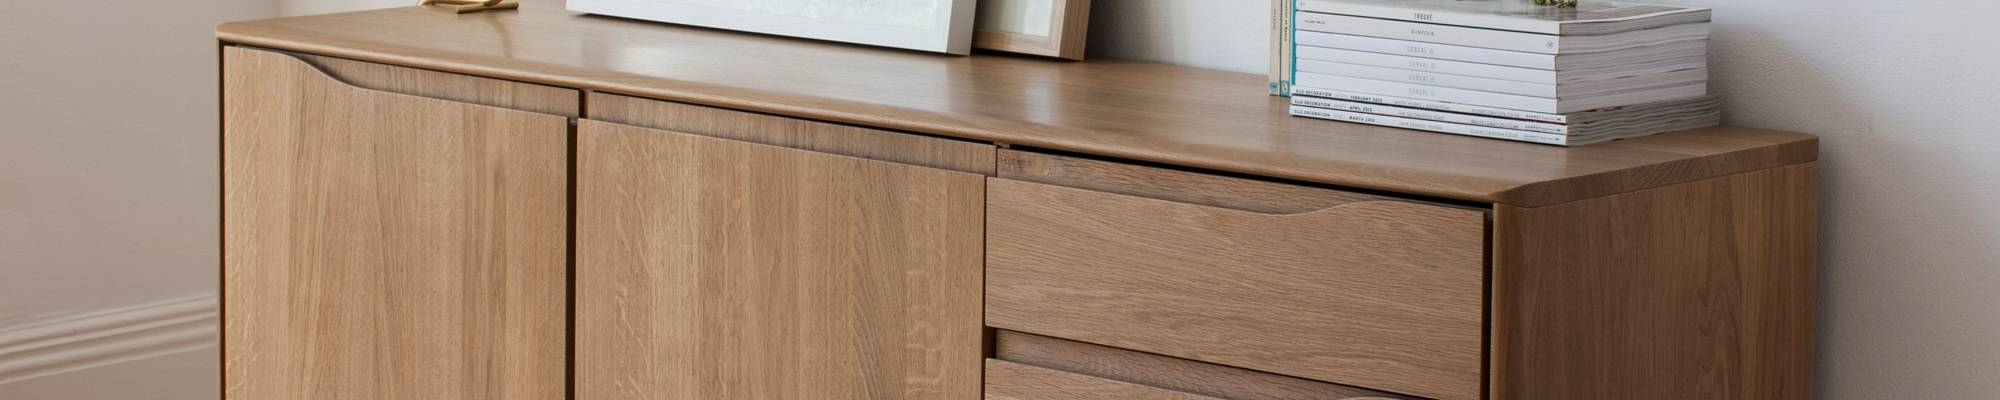 Designer Sideboards 2019 Latest Contemporary Sideboards